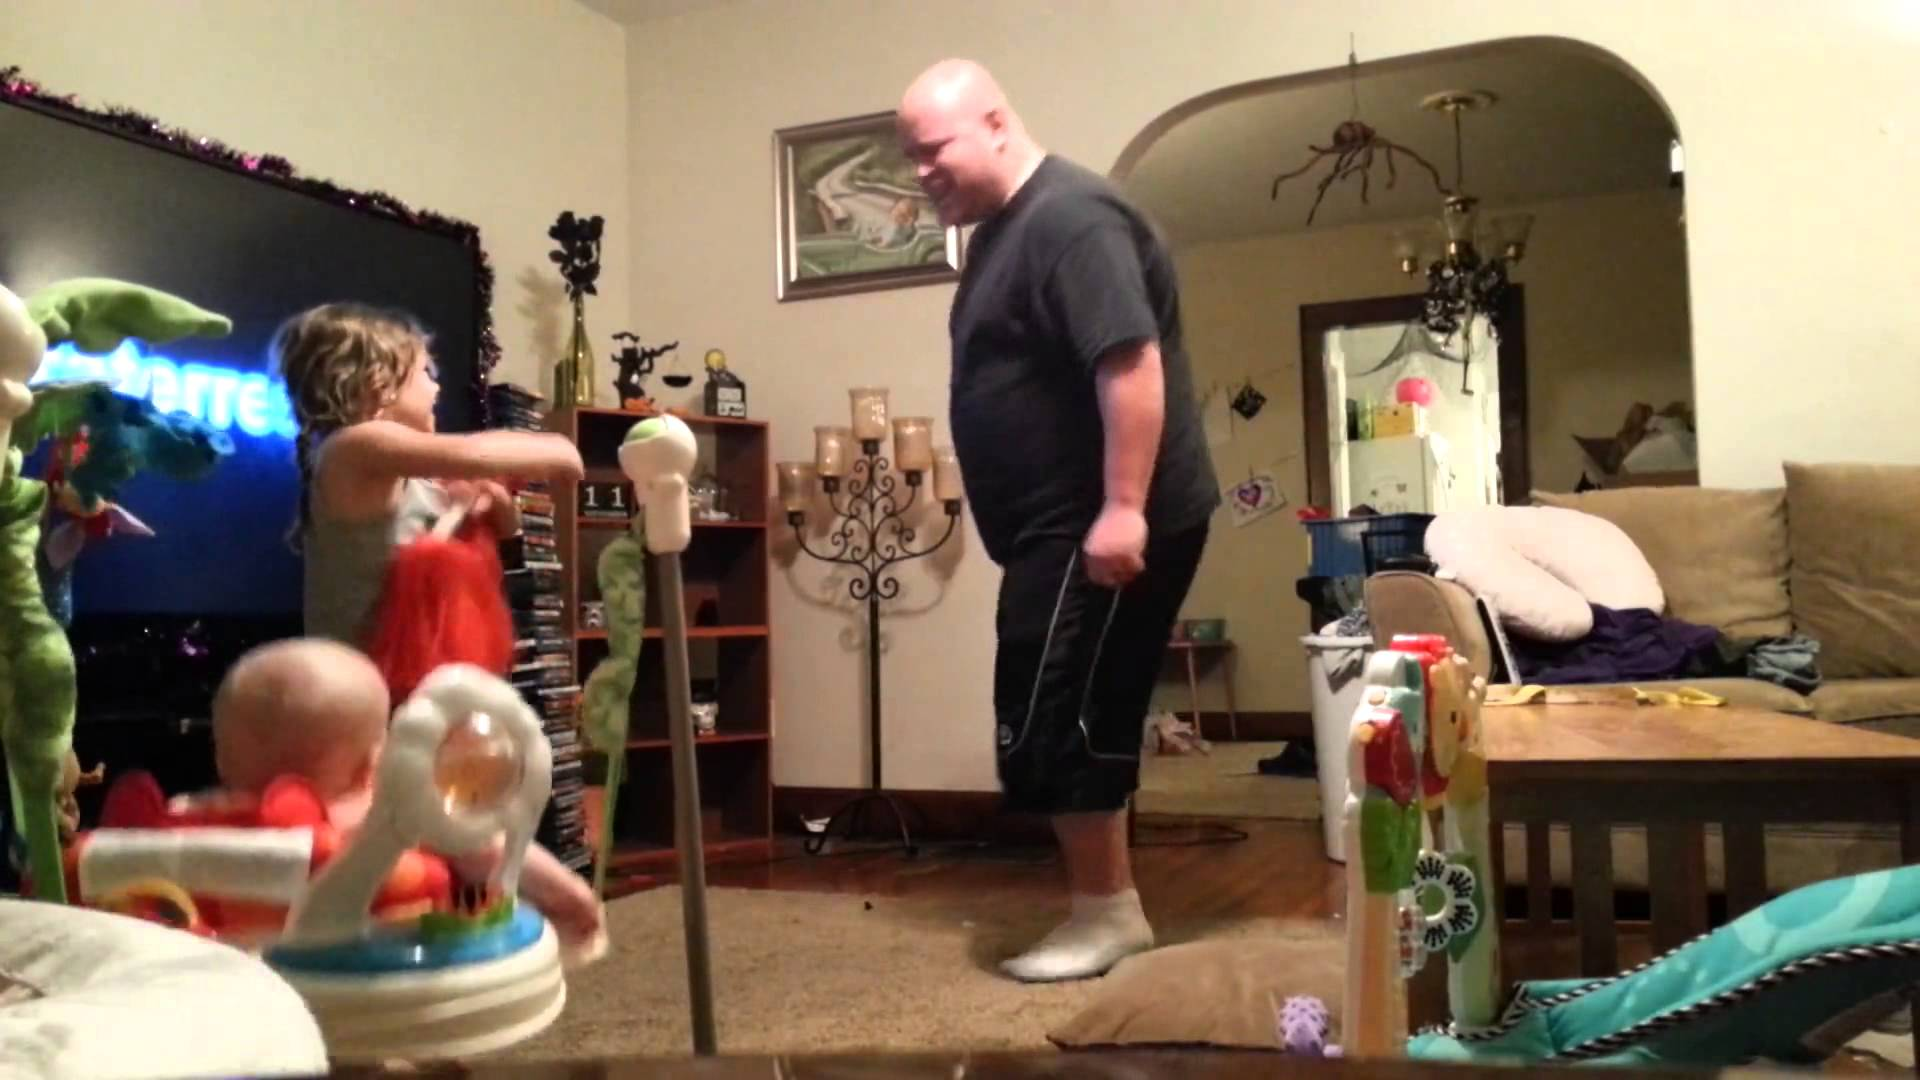 Husband caught on hidden camera playing with the kids